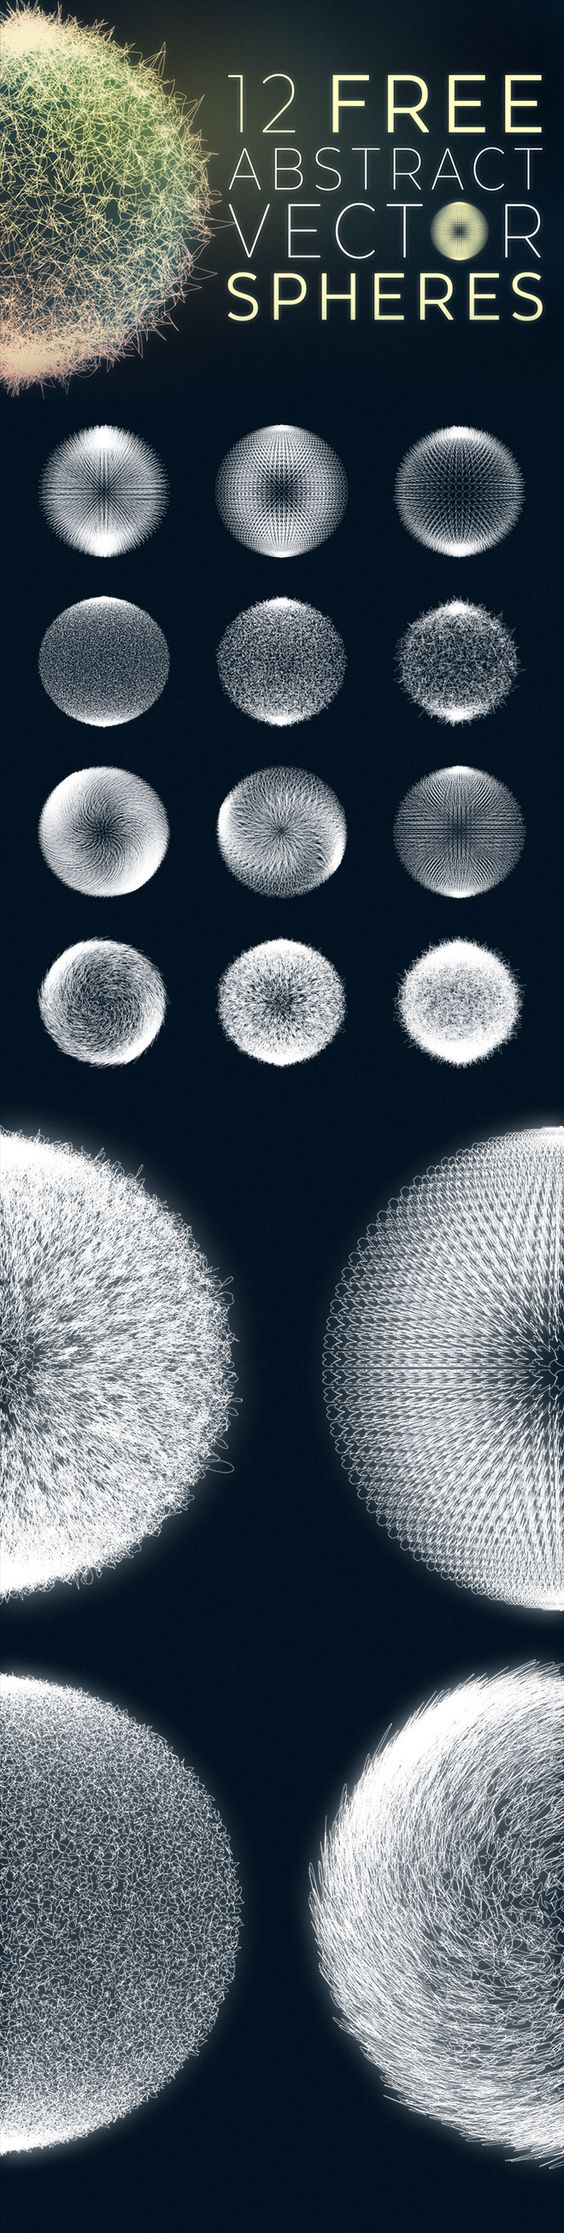 12 Free Abstract Sphere Graphics in Vector Format